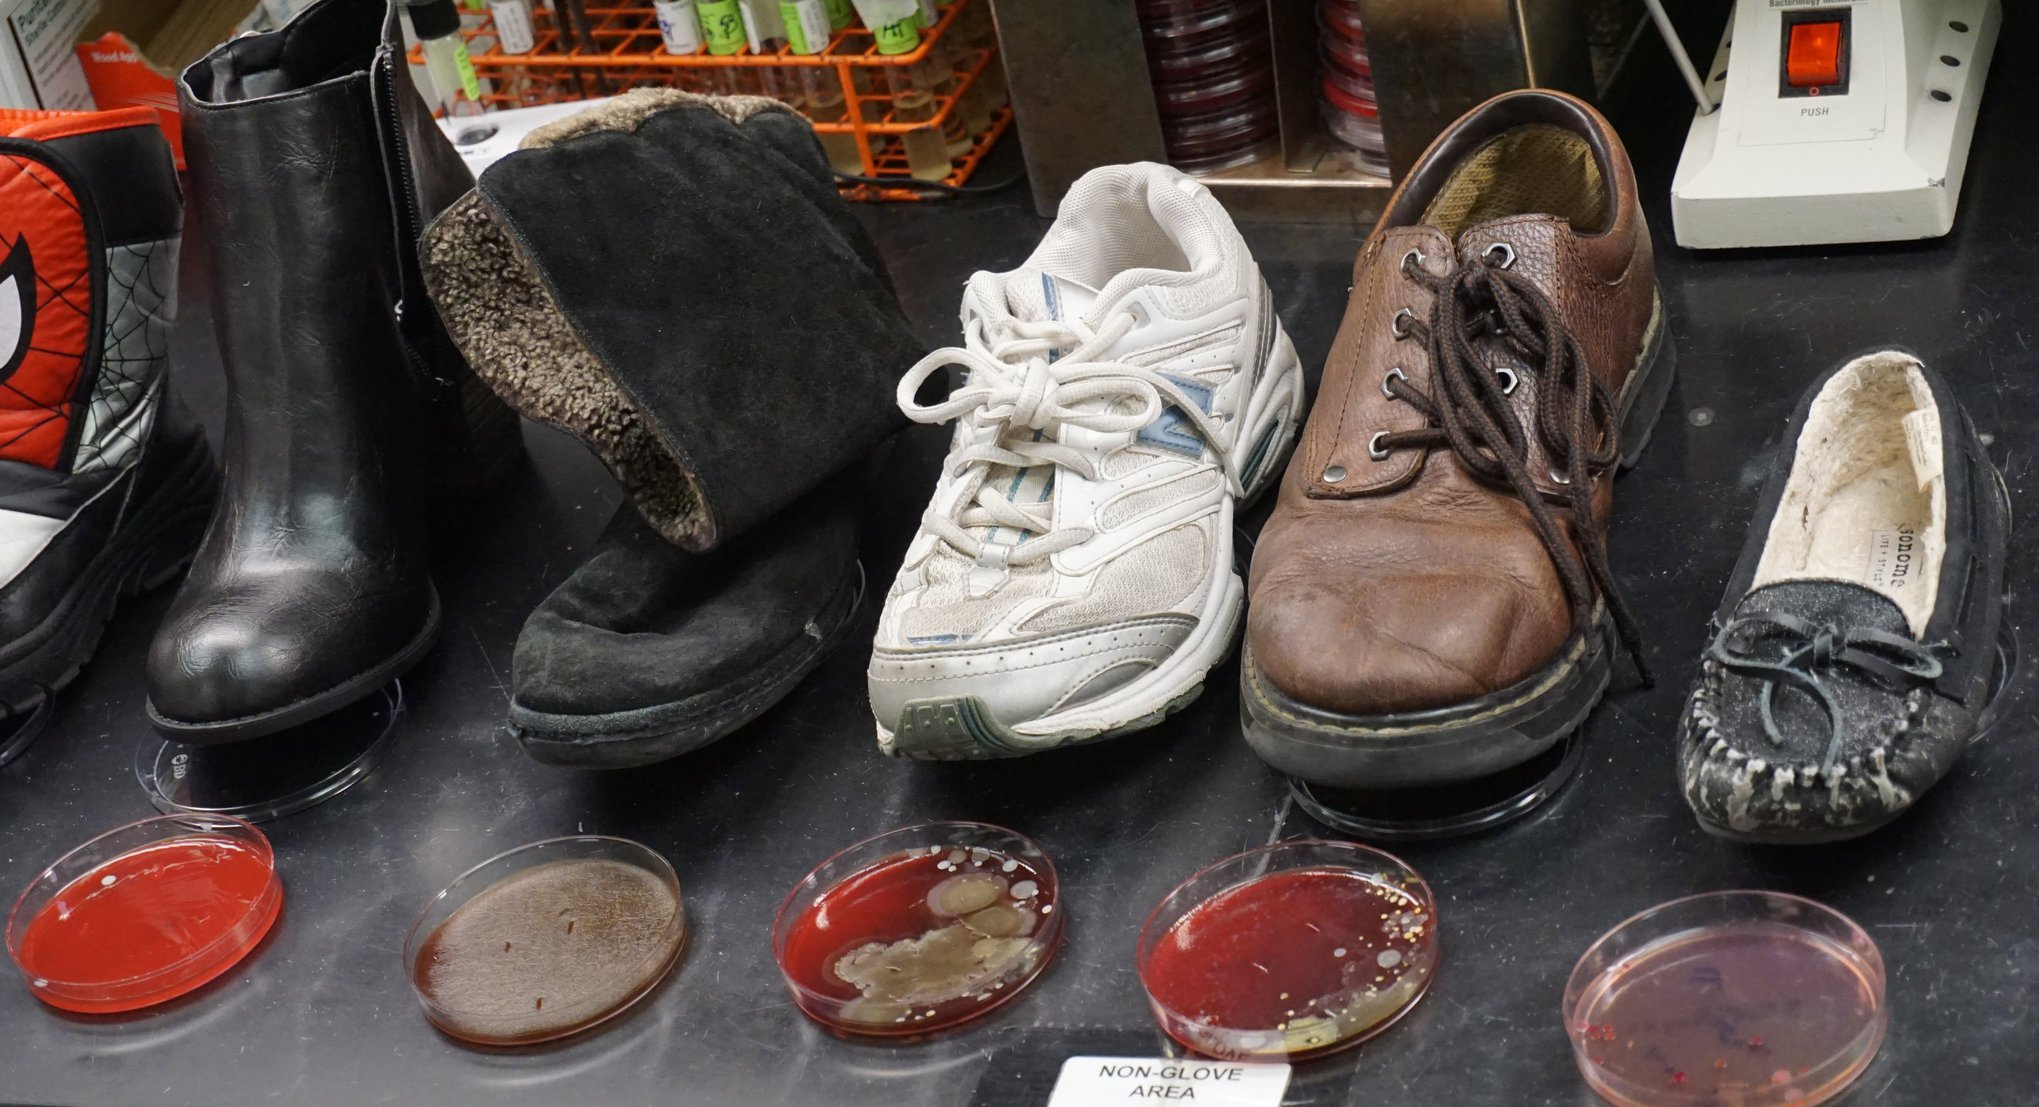 germ cultures from shoes